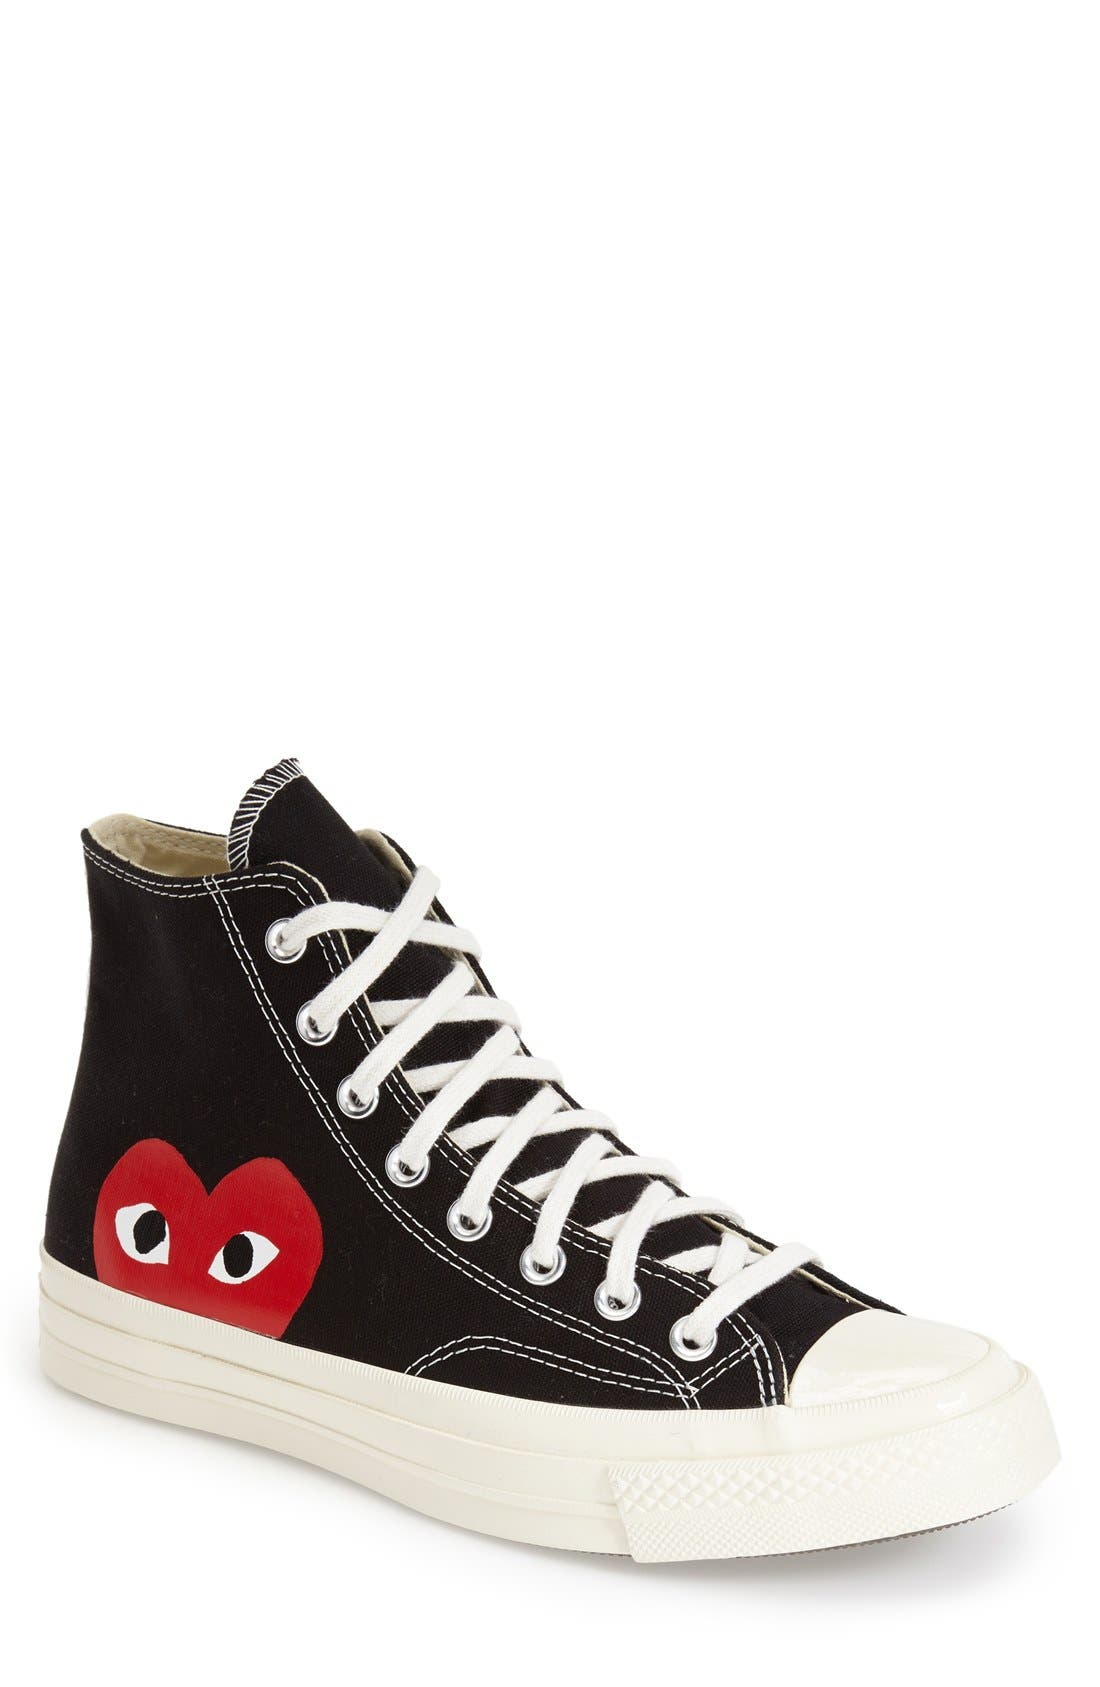 Comme des Garçons PLAY x Converse Chuck Taylor® - Hidden Heart High Top Sneaker (Men)